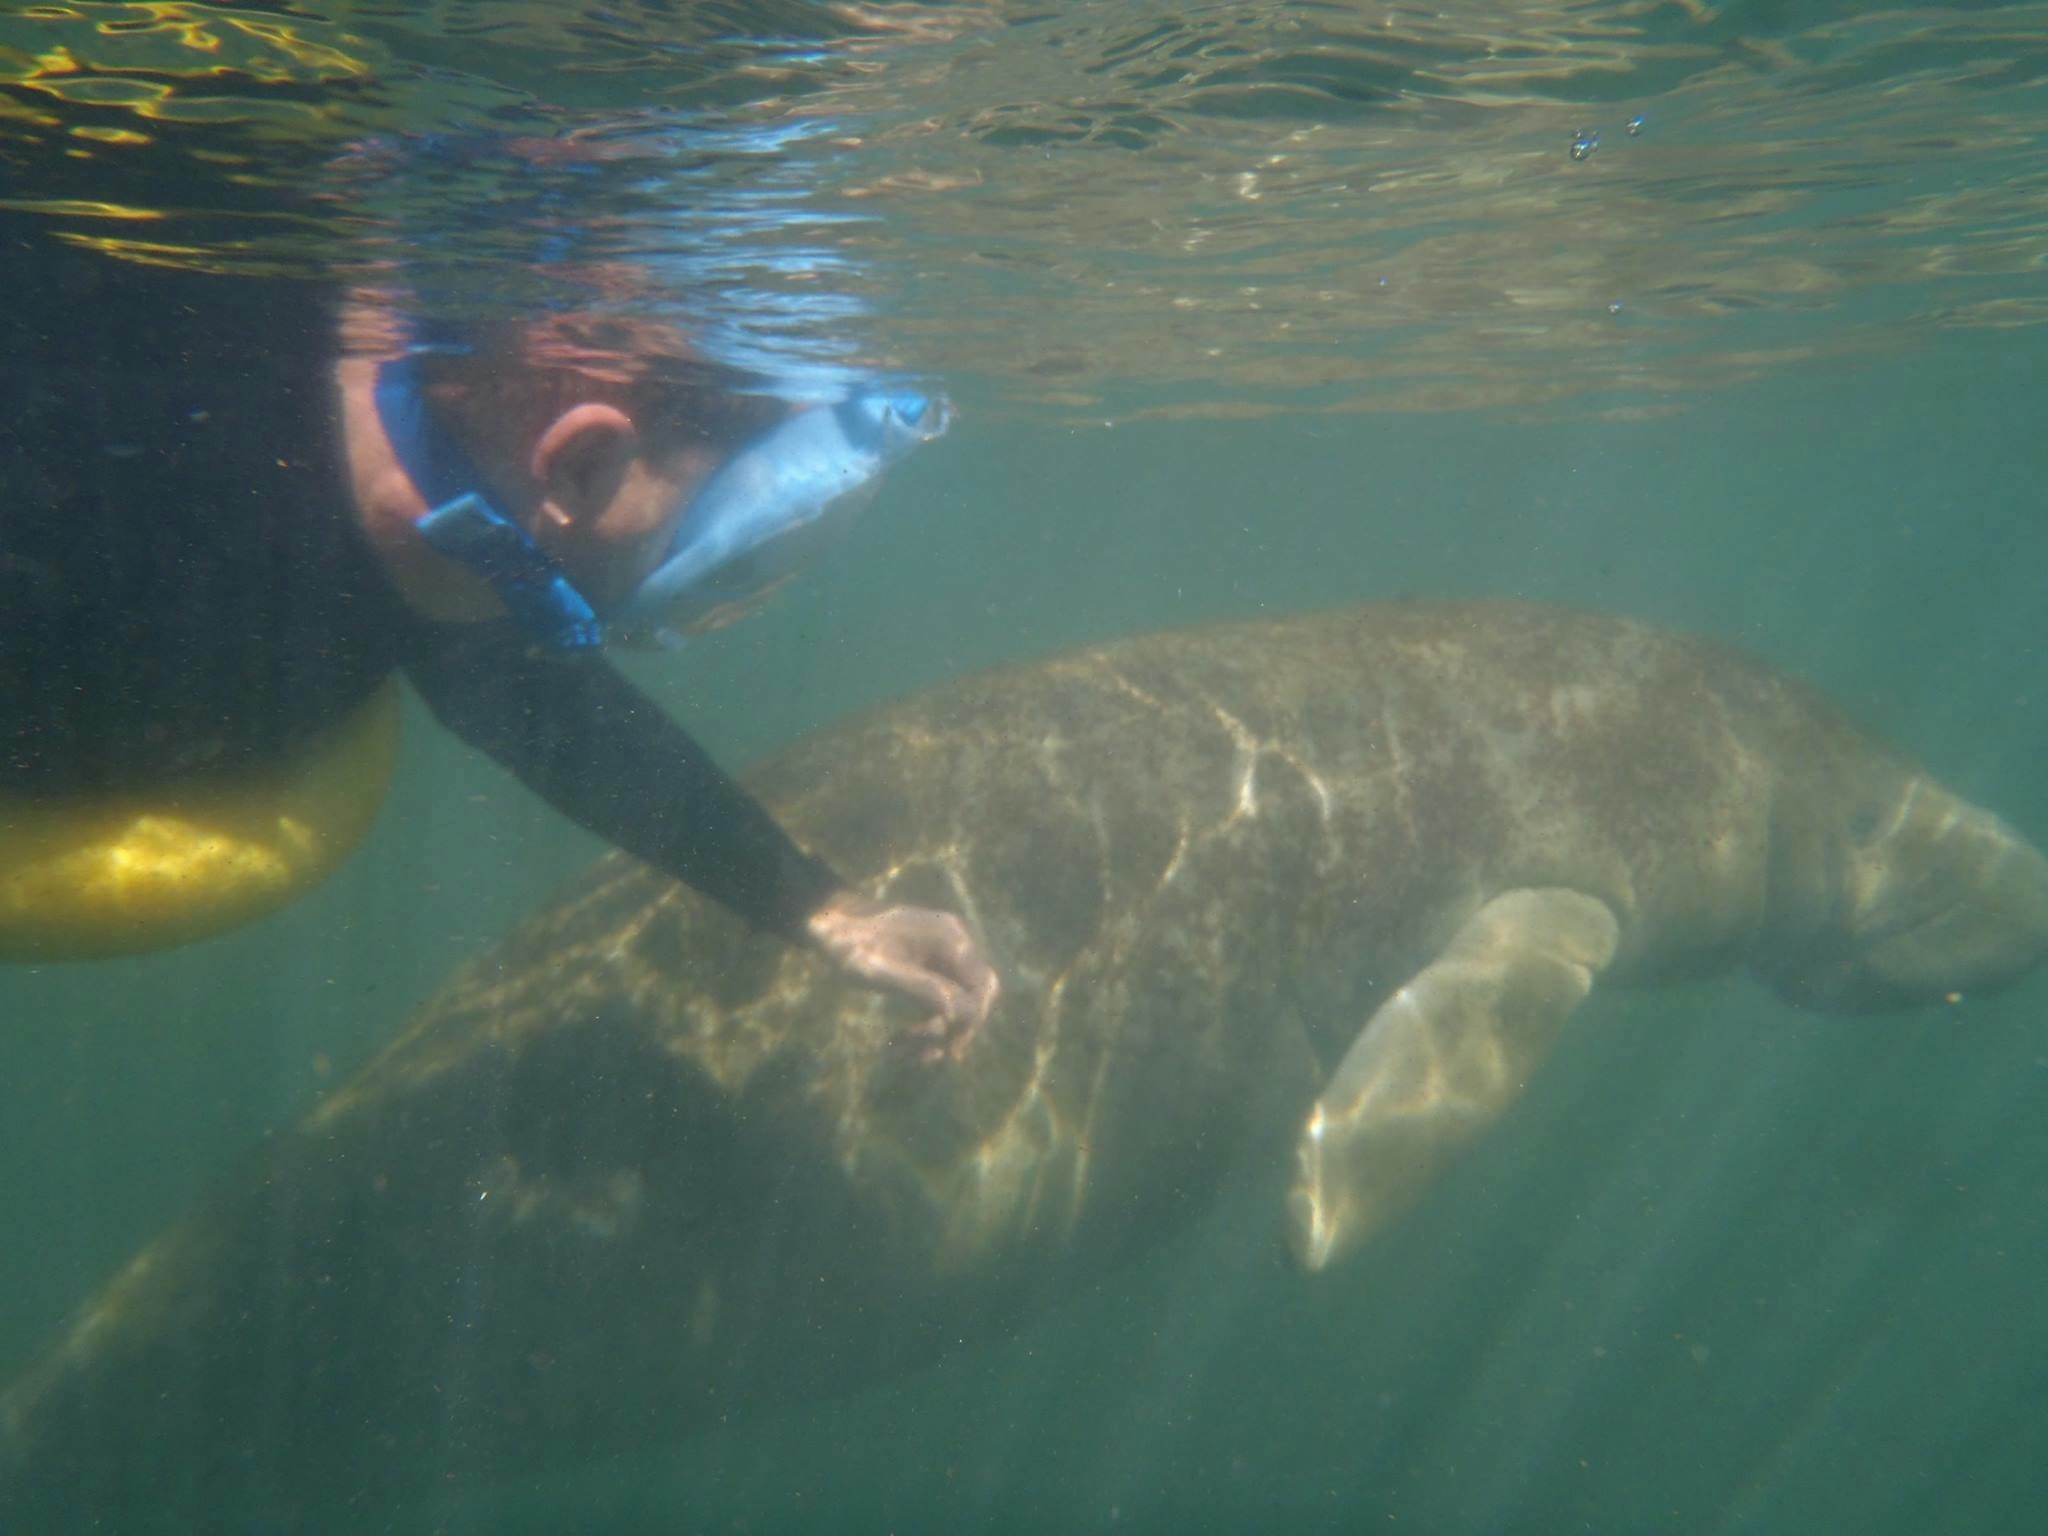 swimming beside a manatee